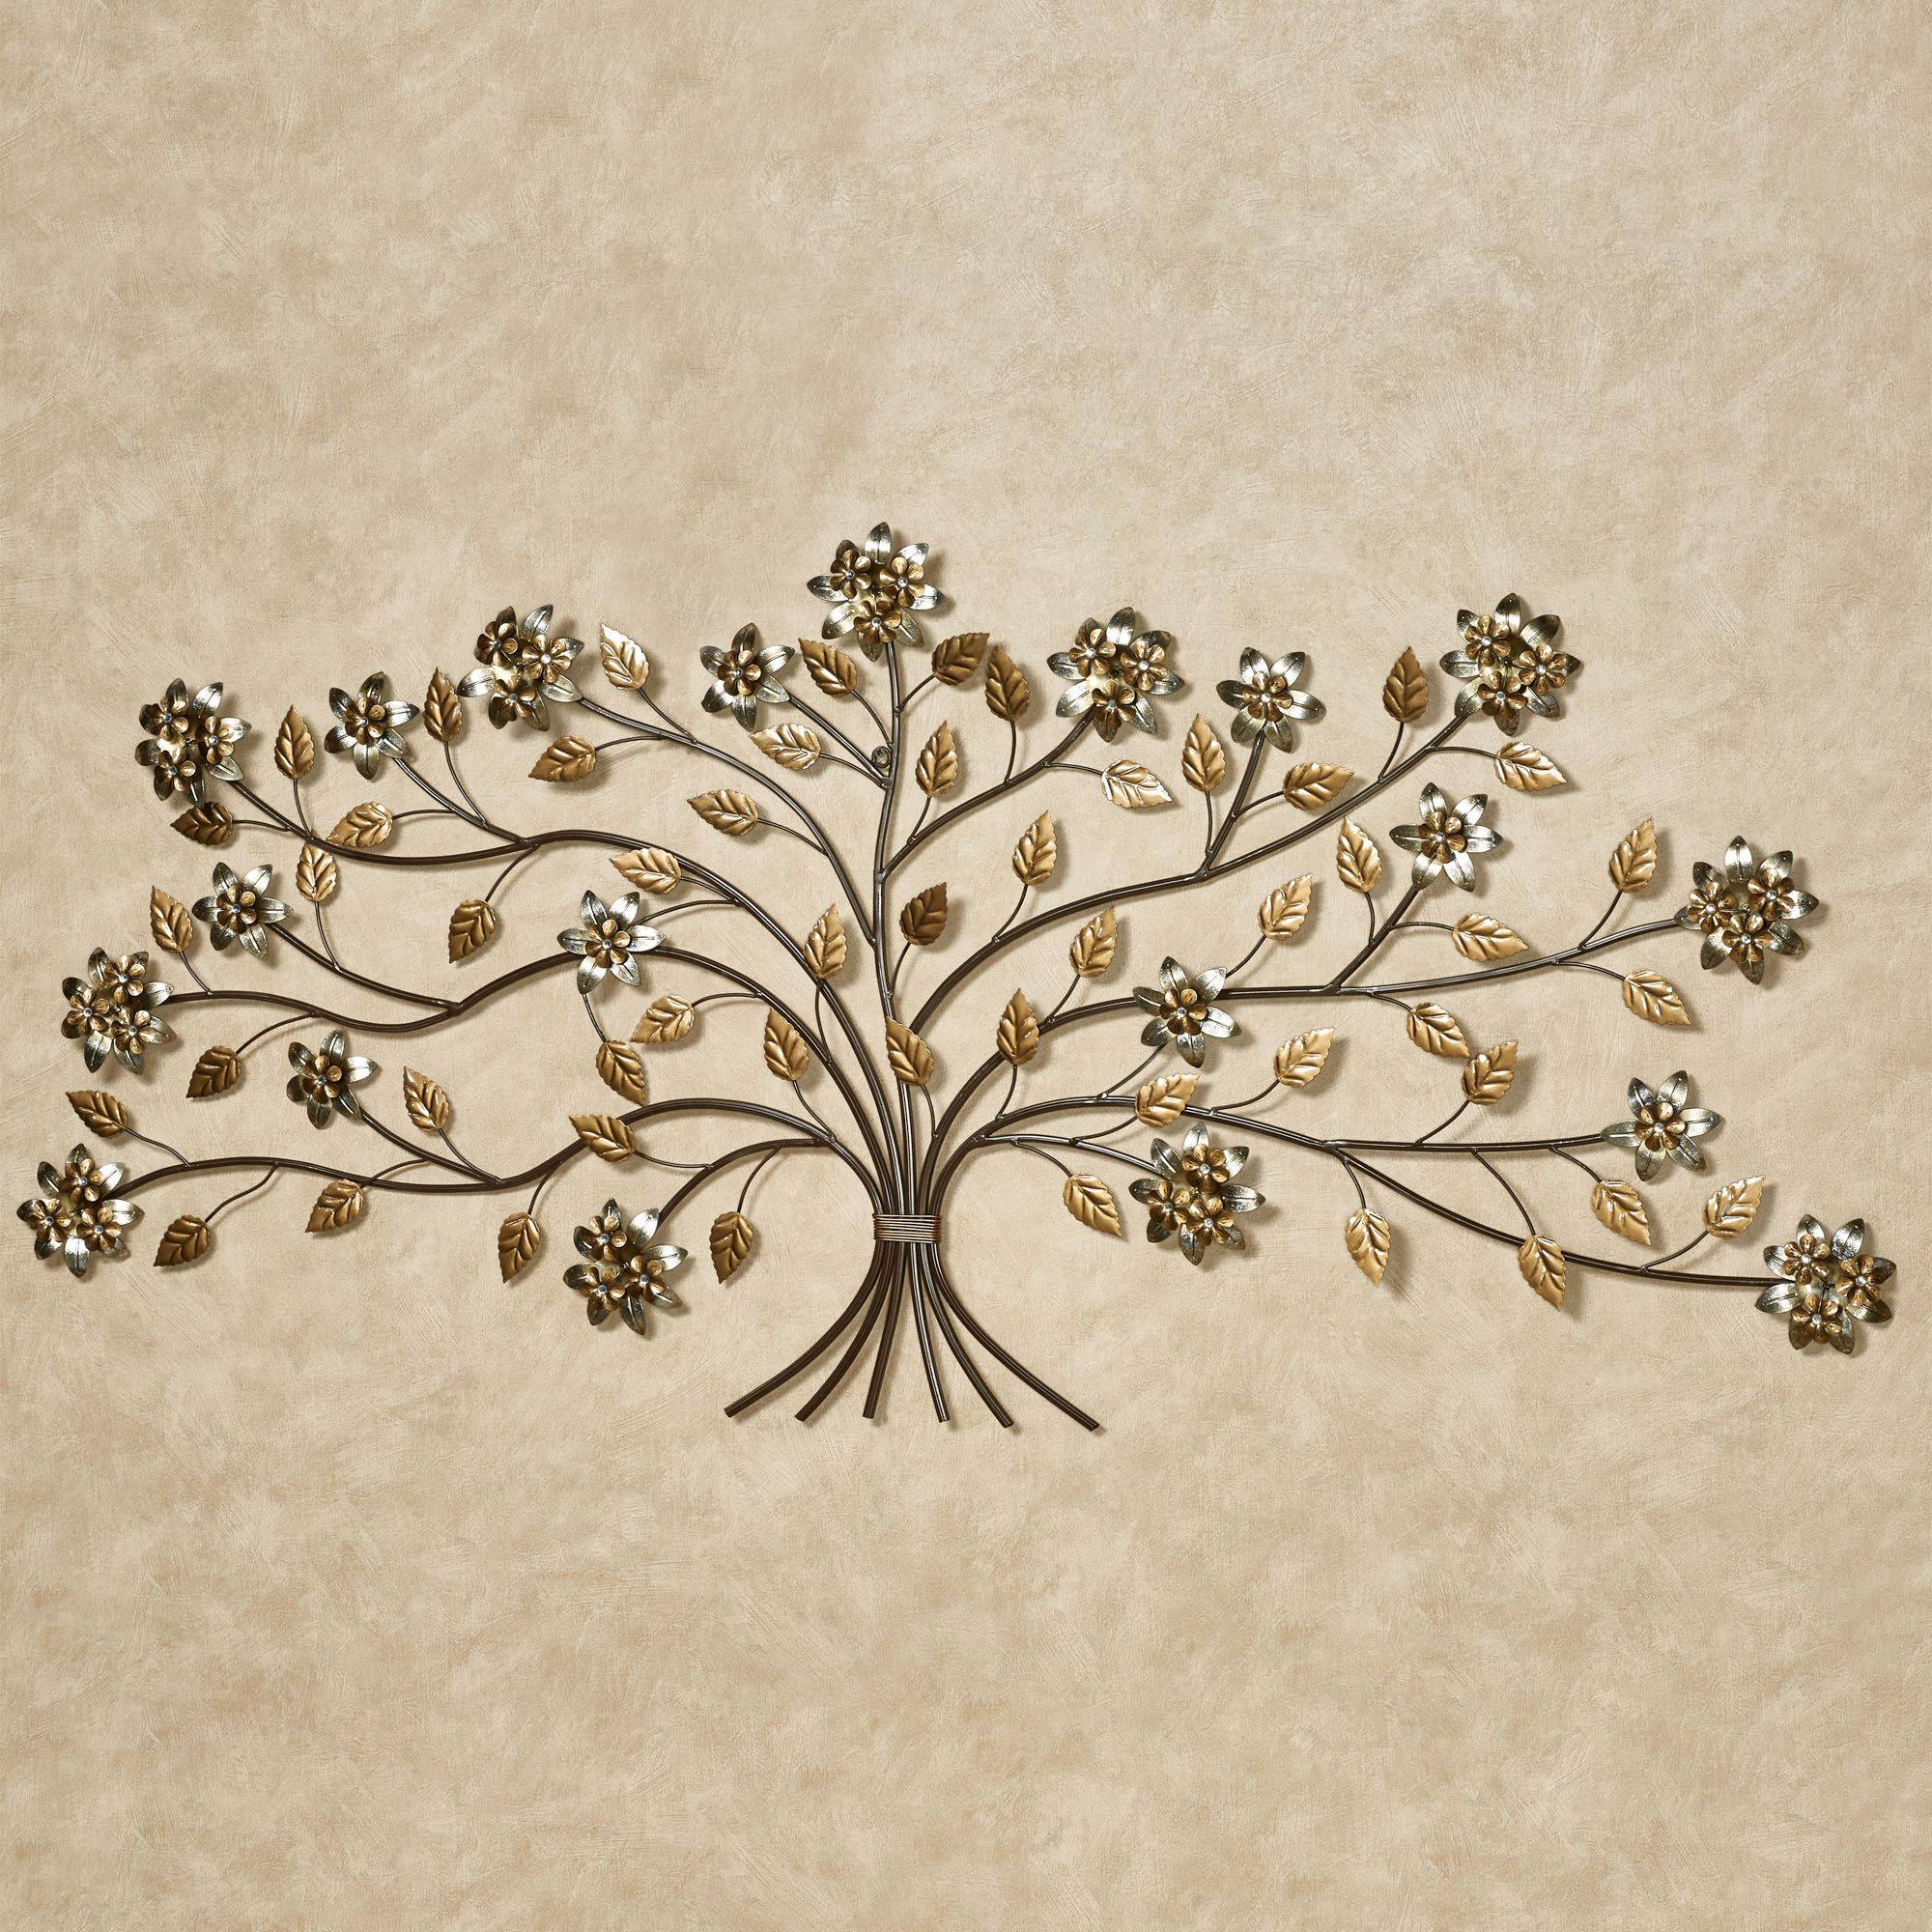 Bellissa Floral Branch Metal Wall Art – 59 Inches Wide Inside Current Branches Metal Wall Art (View 20 of 20)